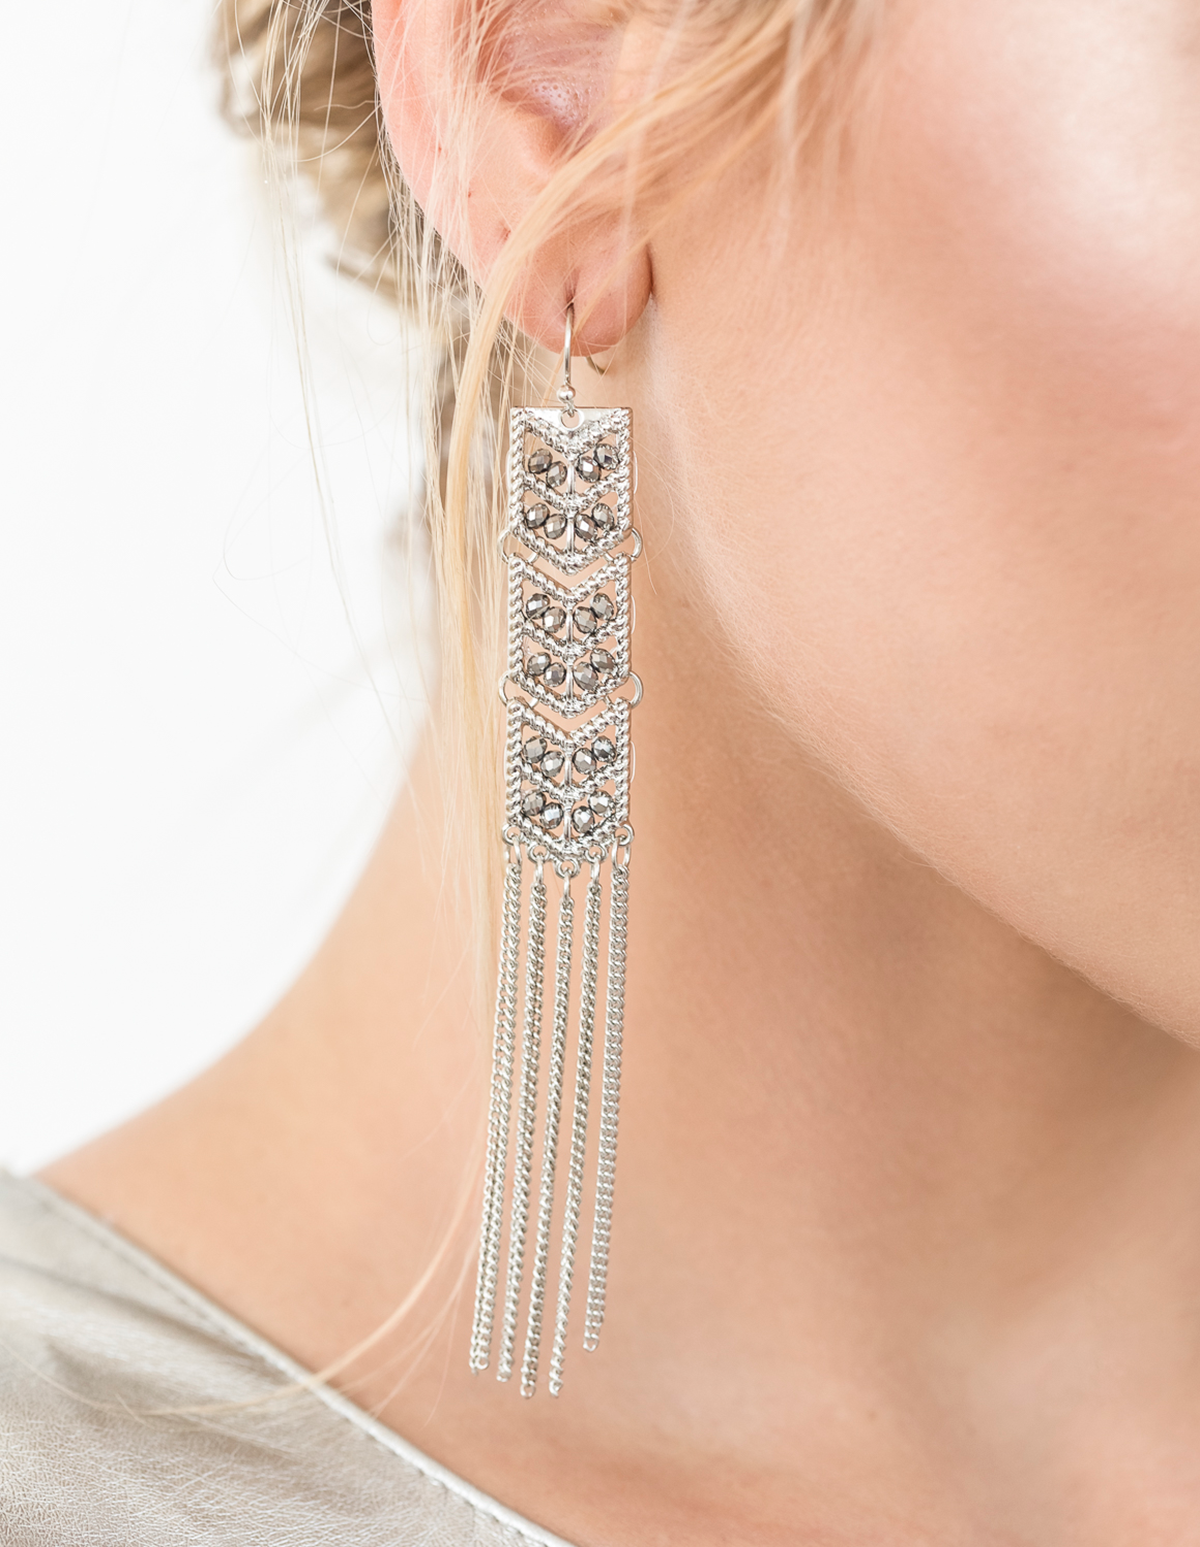 Tiered bead and chain earrings